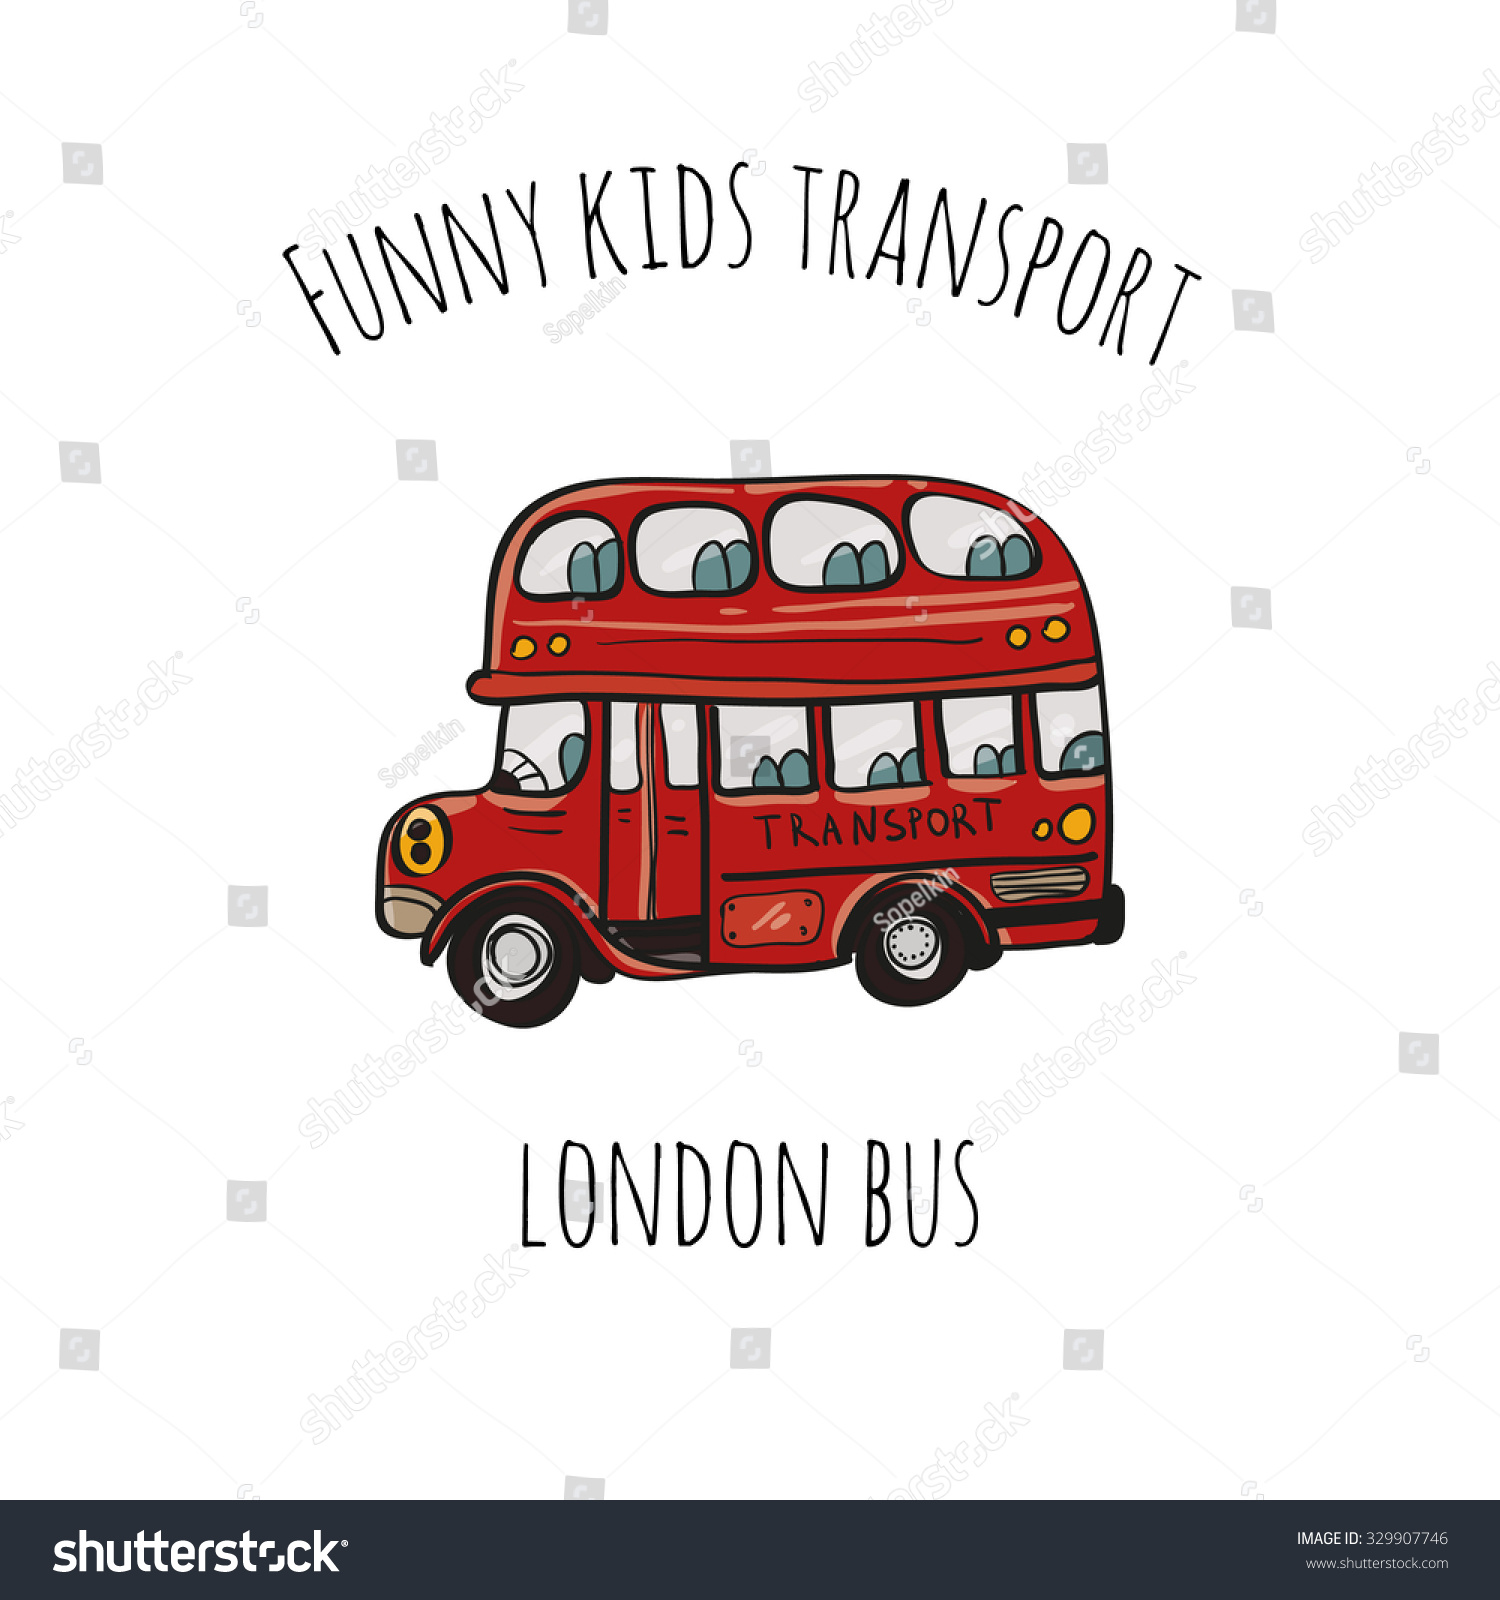 Funny Kids Transport London Bus Cute Stock Vector